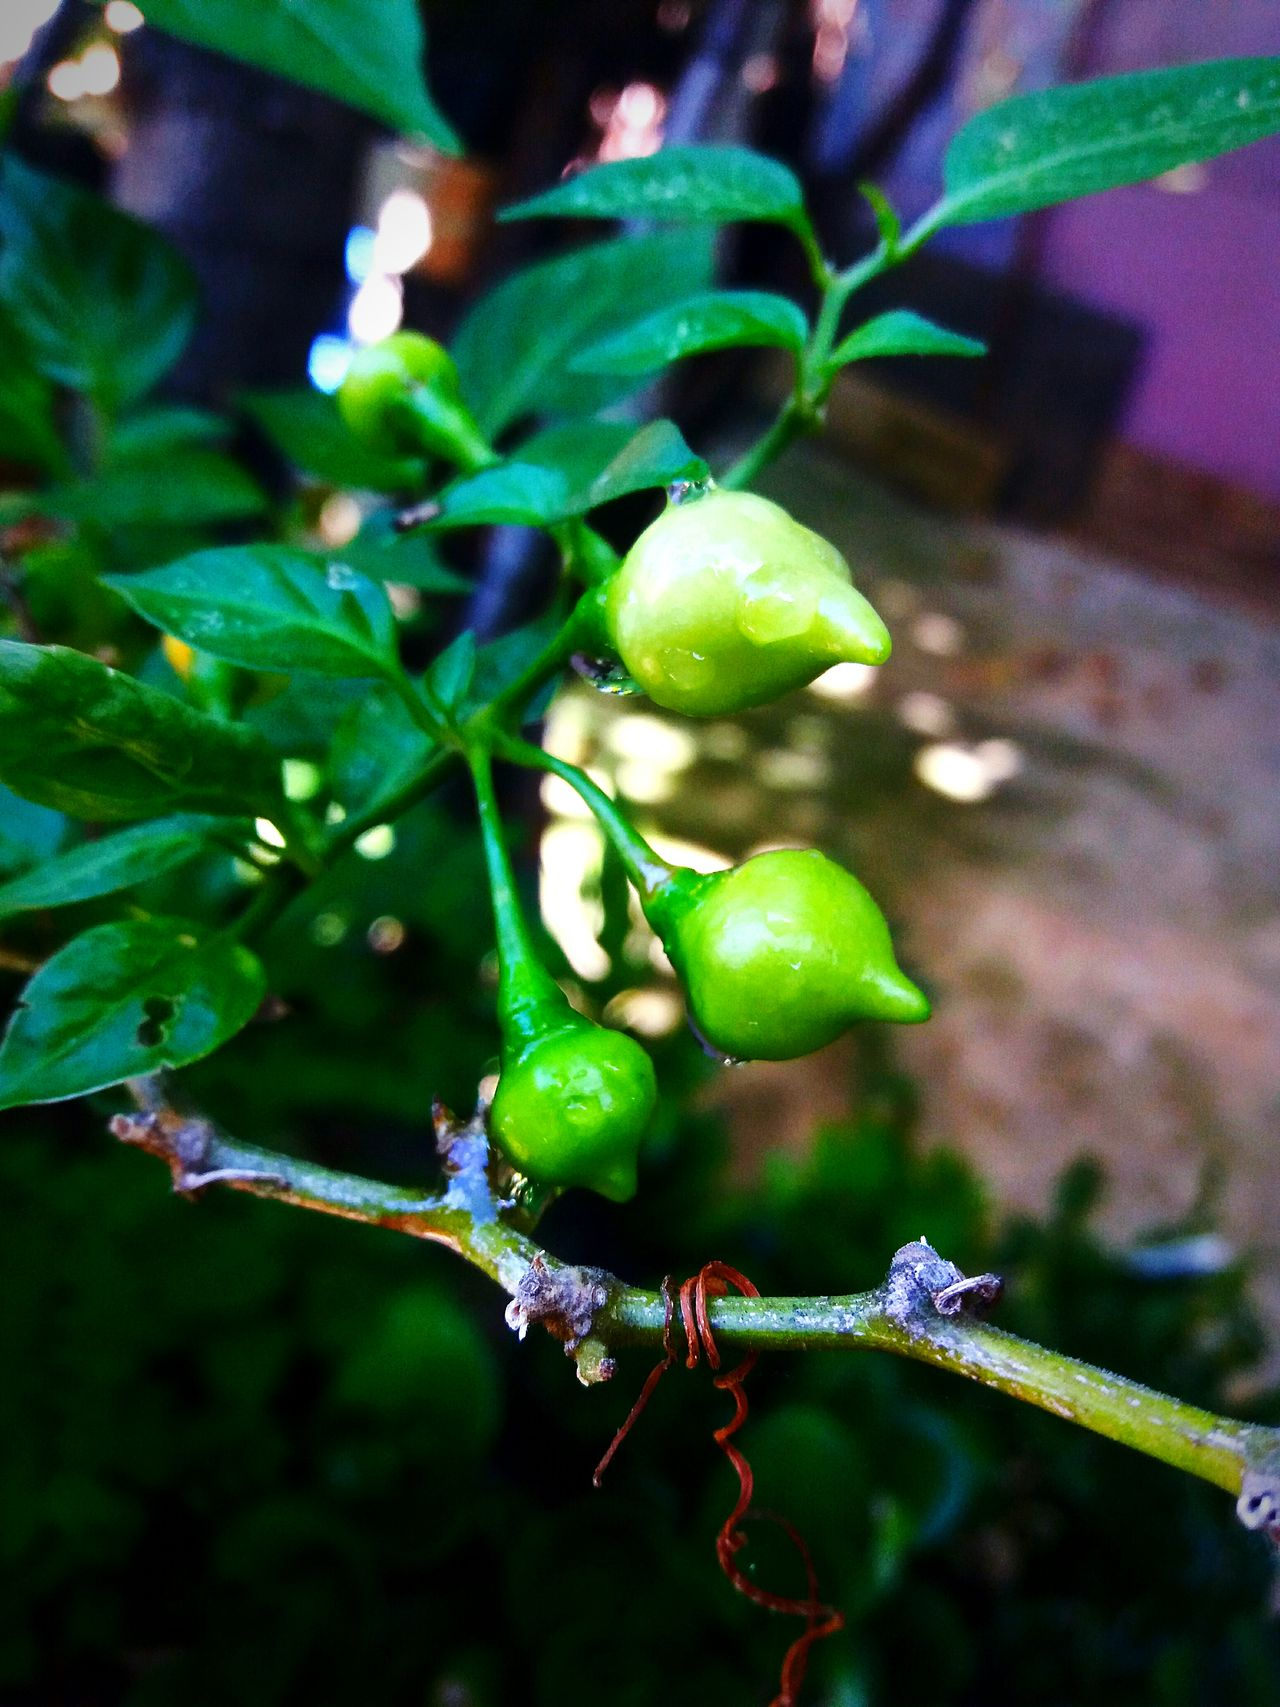 Green Color Nature Beauty In Nature Pimenta Bh